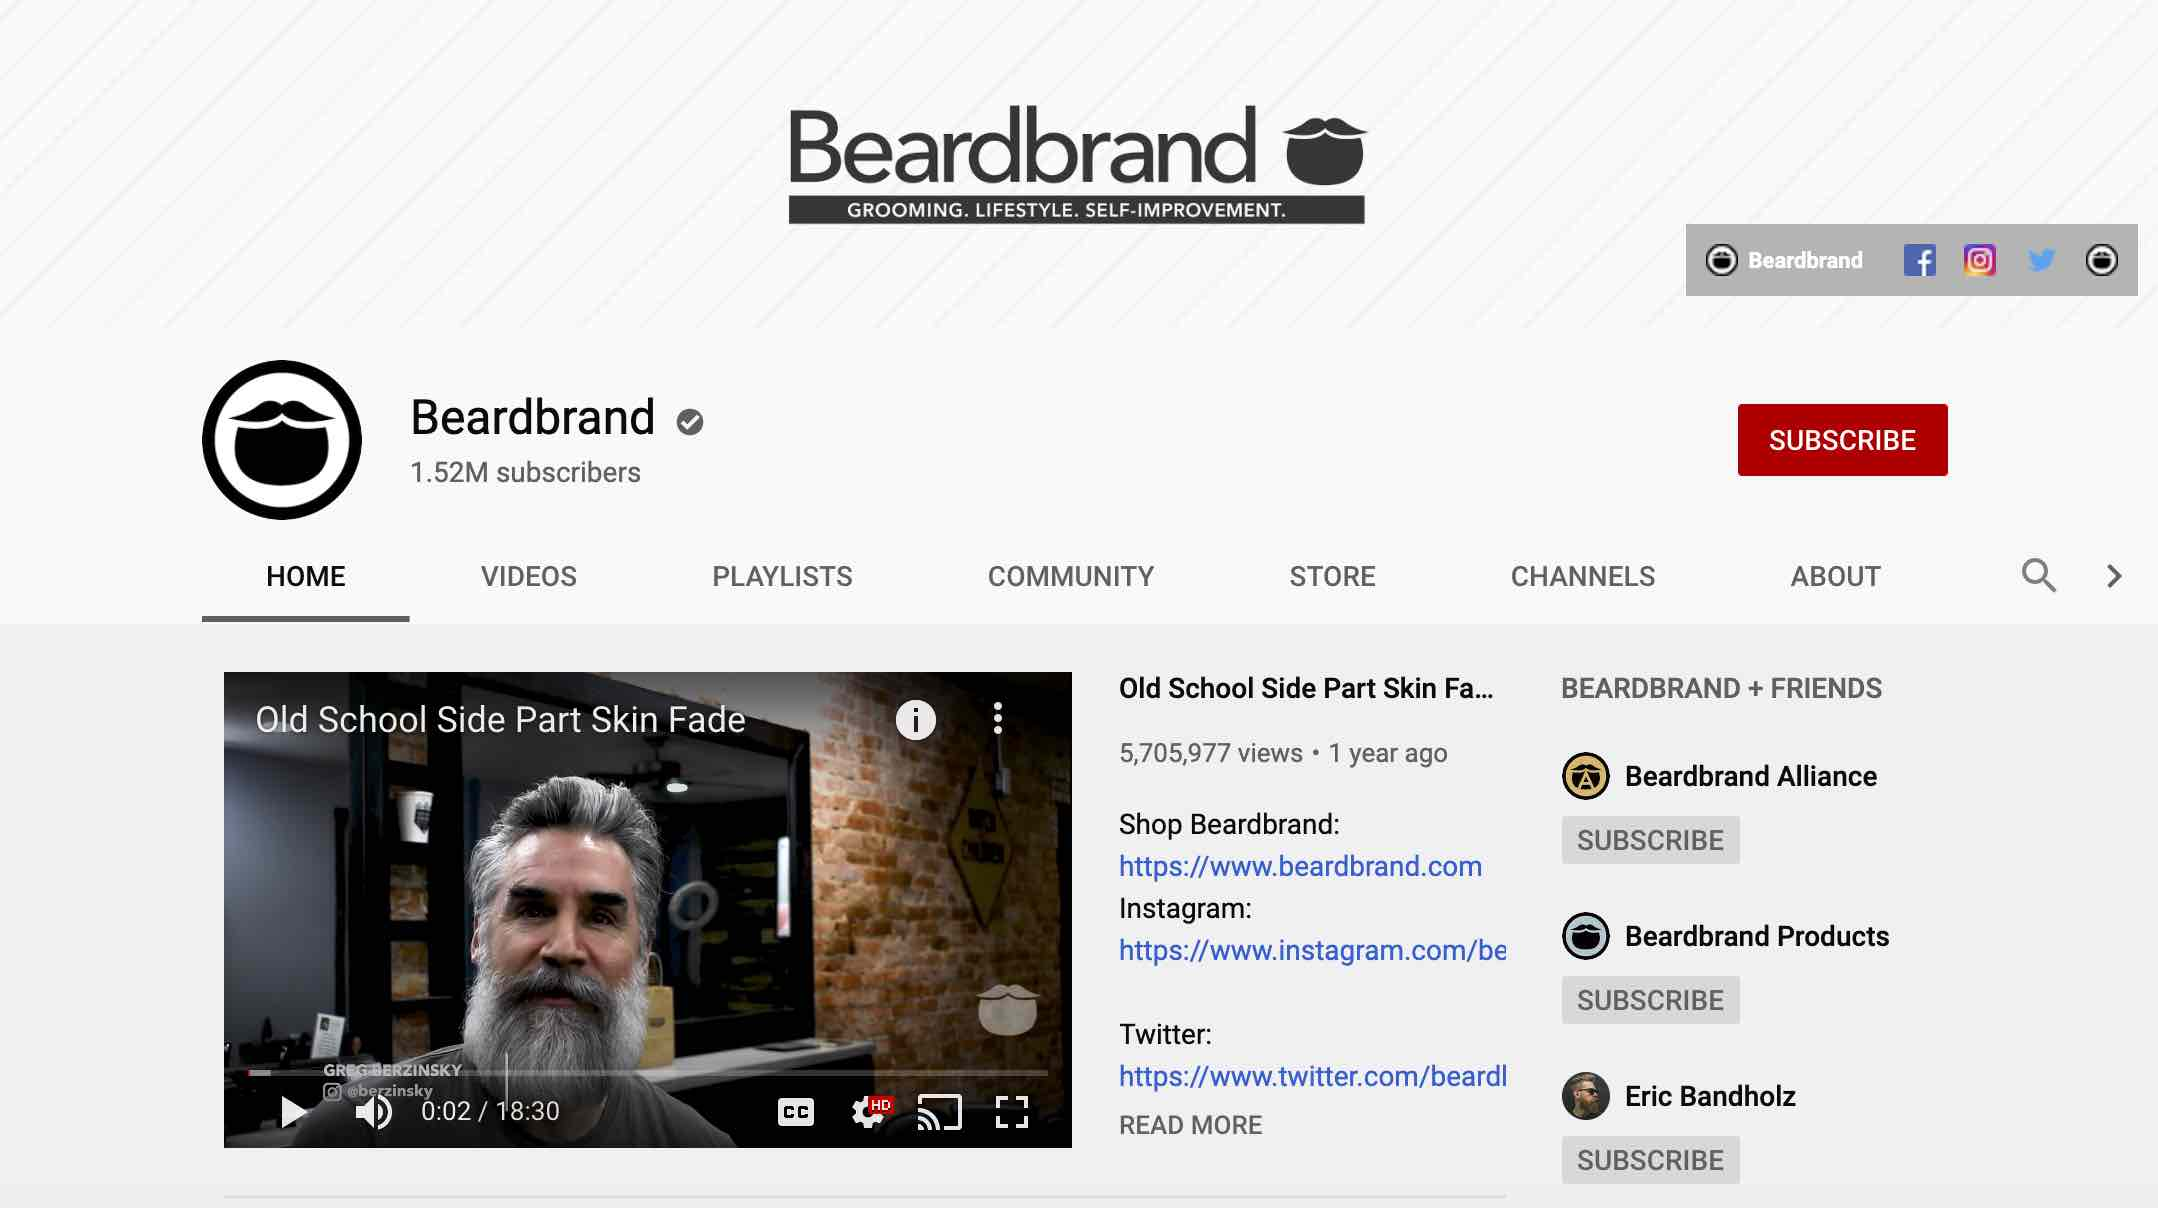 BeardBrand's YouTube profile, a great case study in social media and content marketing.